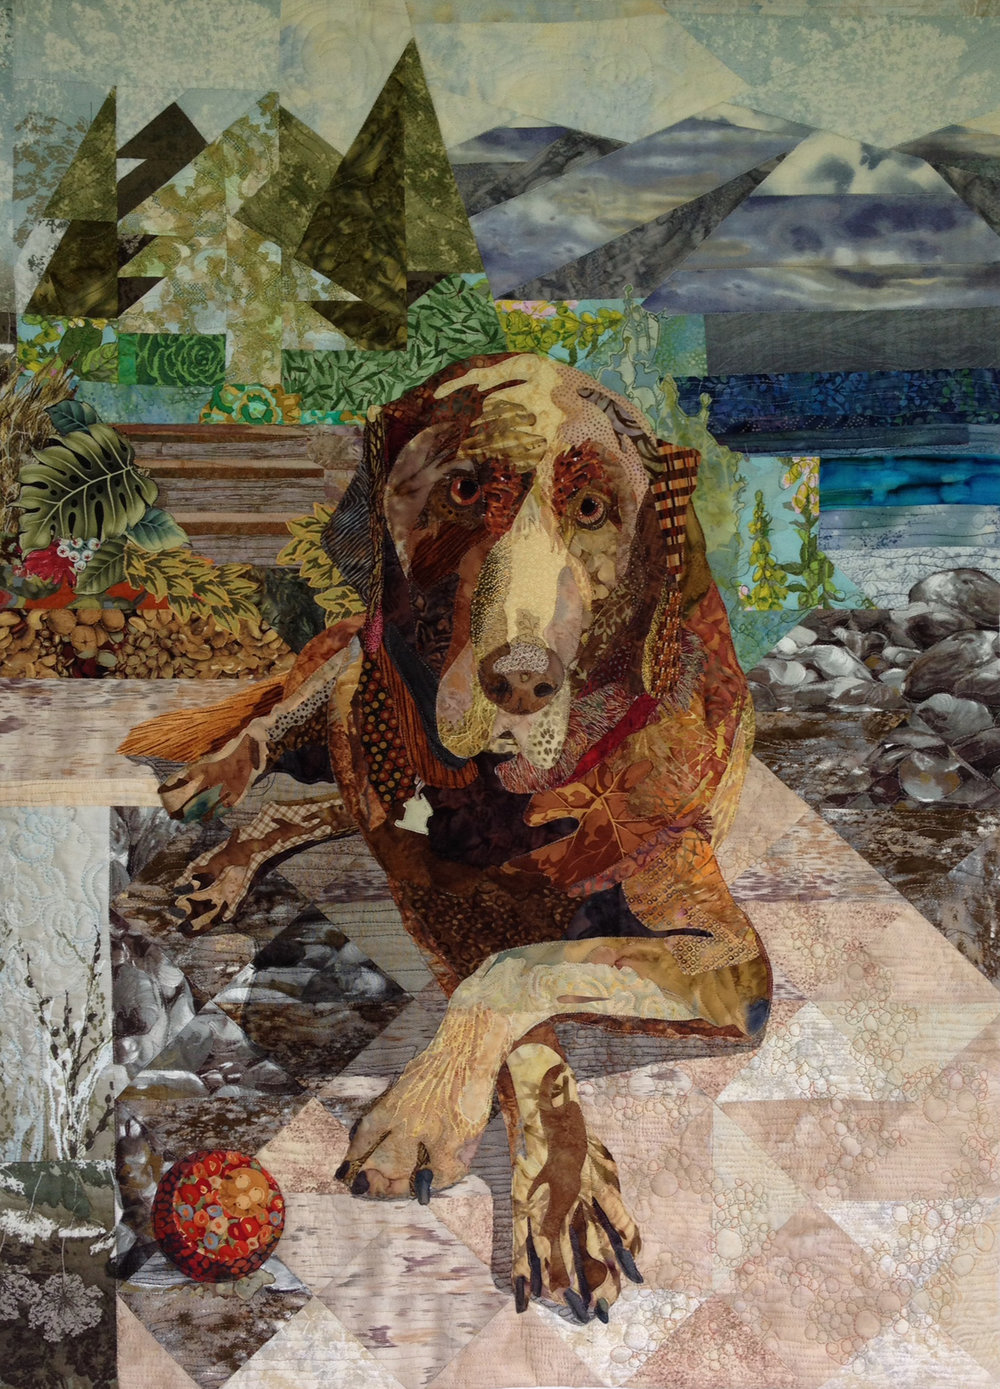 """Aussie - 29"""" x 40""""Judges' Choice Canadian Quilt Association National Juried Show 2015My inspiration is the character of a west coast family's Chocolate Labrador Retriever. He's the (old) man of the house who commands importance within the family and his environs. He draws you in to his world and dares you to throw the ball one more time!Technique: free motion quilting."""